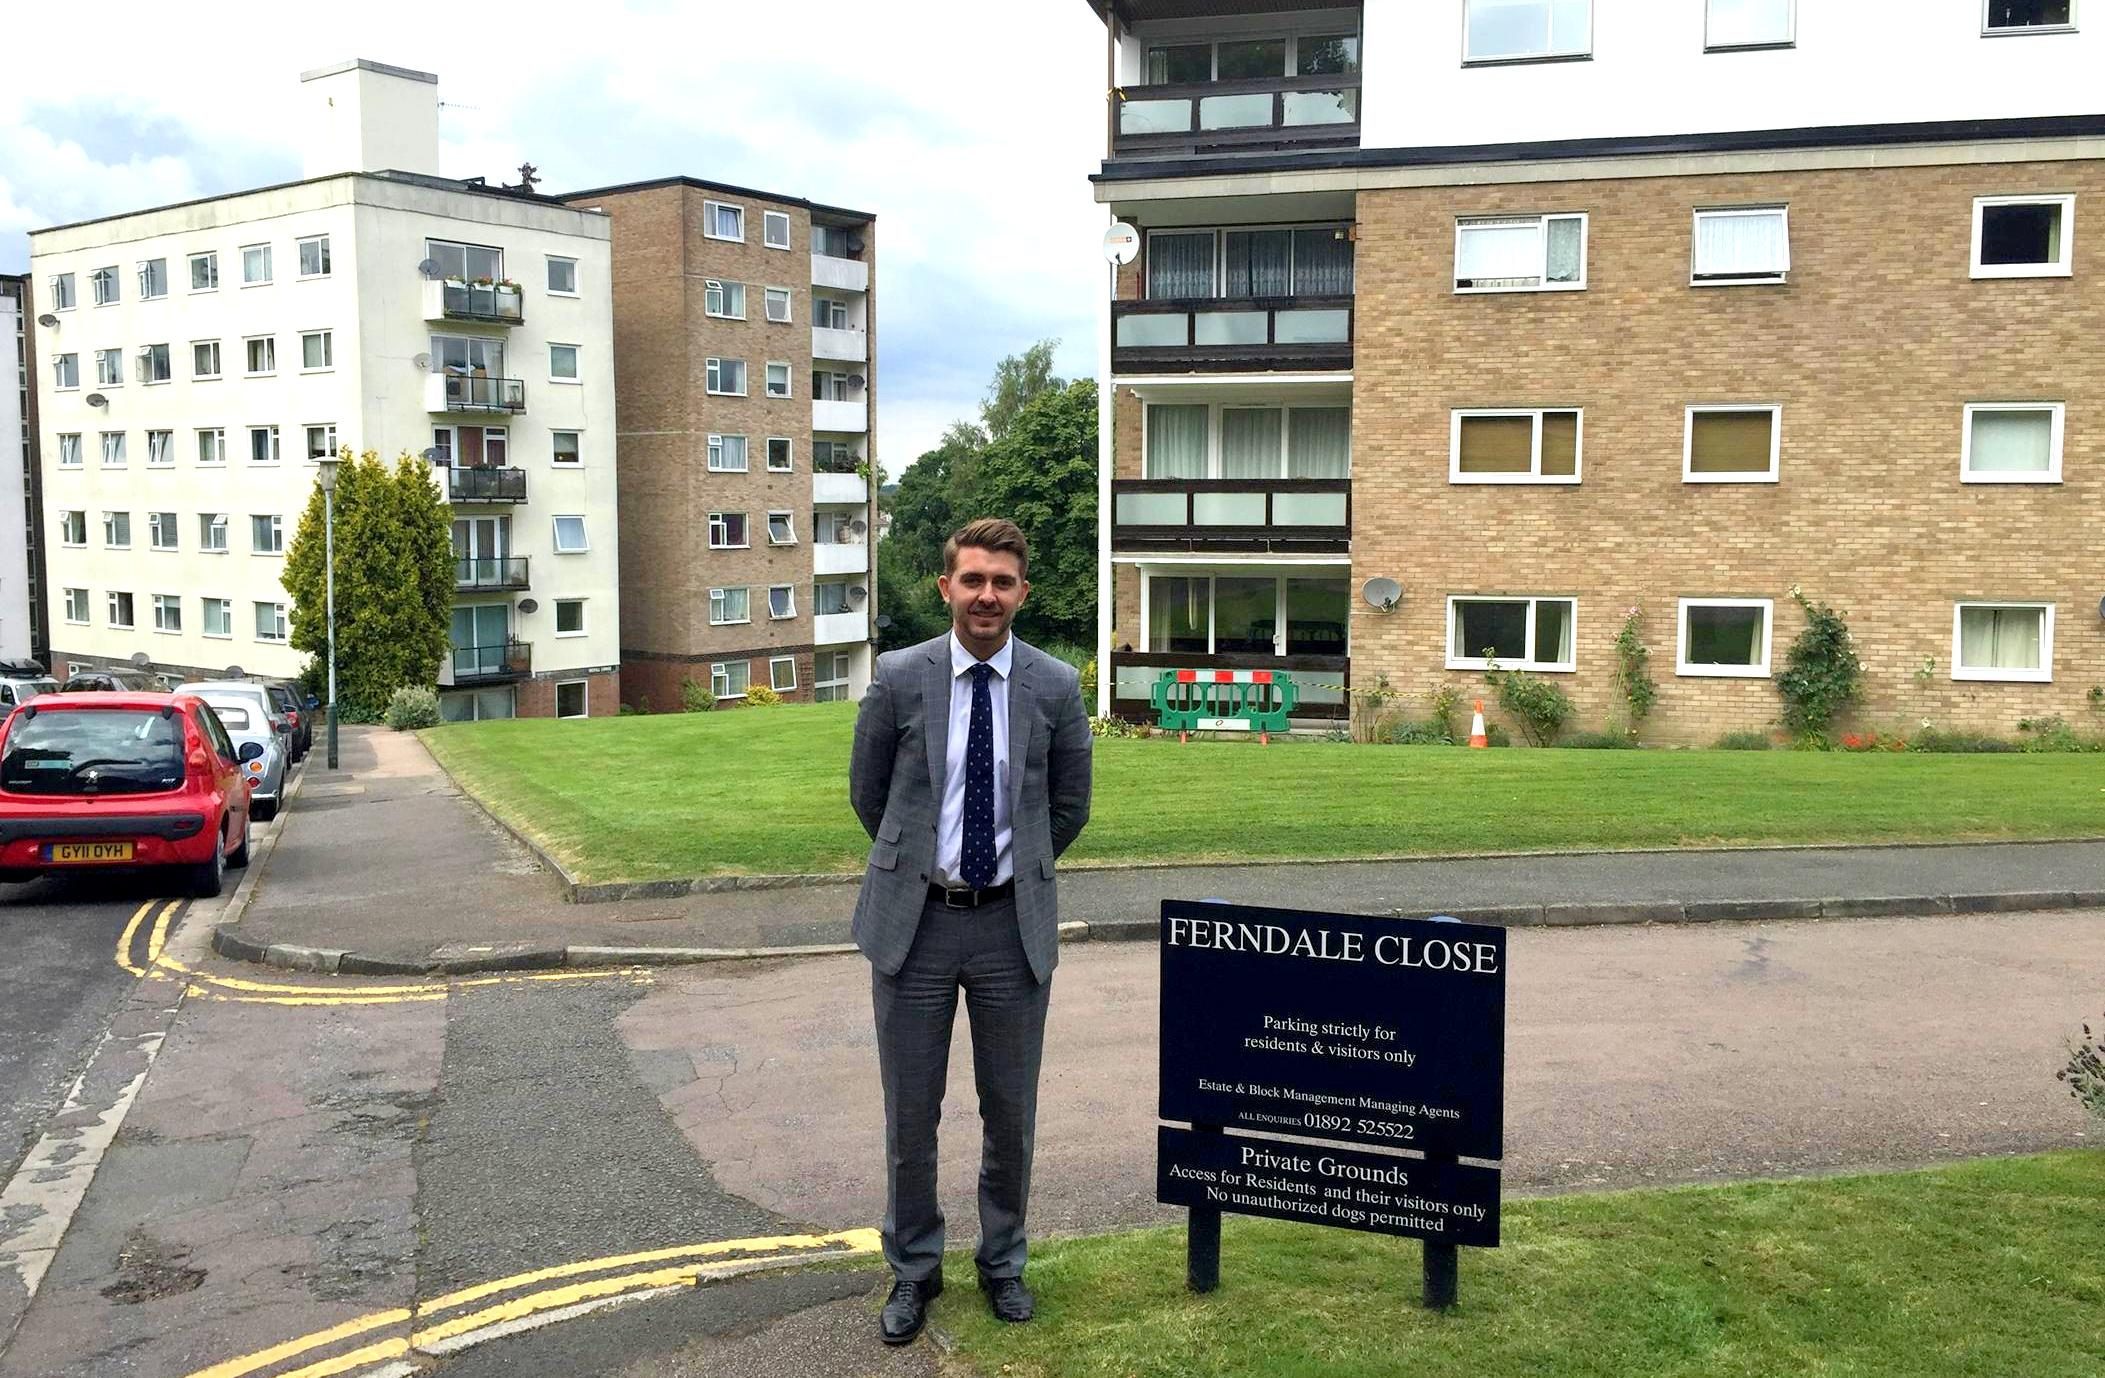 Property Manager and Company Director Matthew Mackintosh stands outside Ferndale Close, the residential estate of 74 flats in Tunbridge Wells.